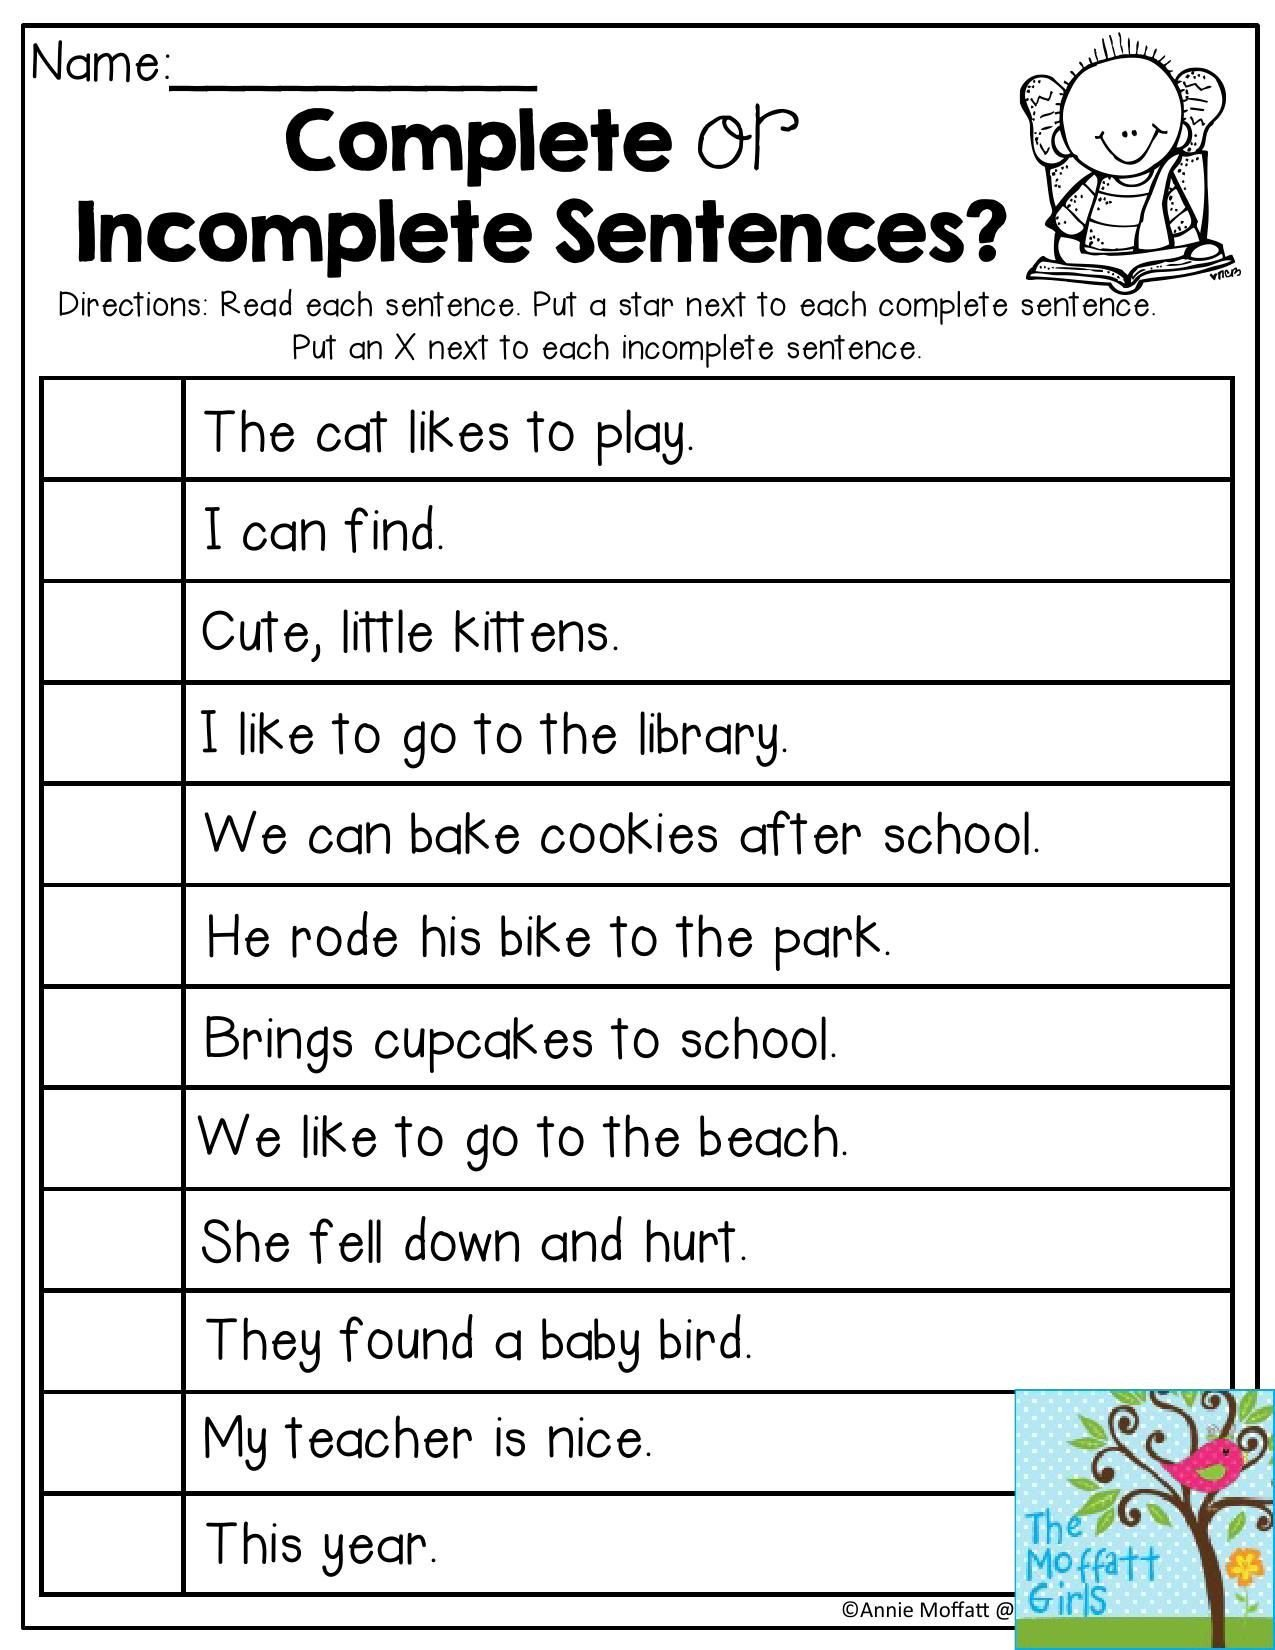 Simple Sentences Worksheet 3rd Grade Plete or In Plete Sentences Read Each Sentence and